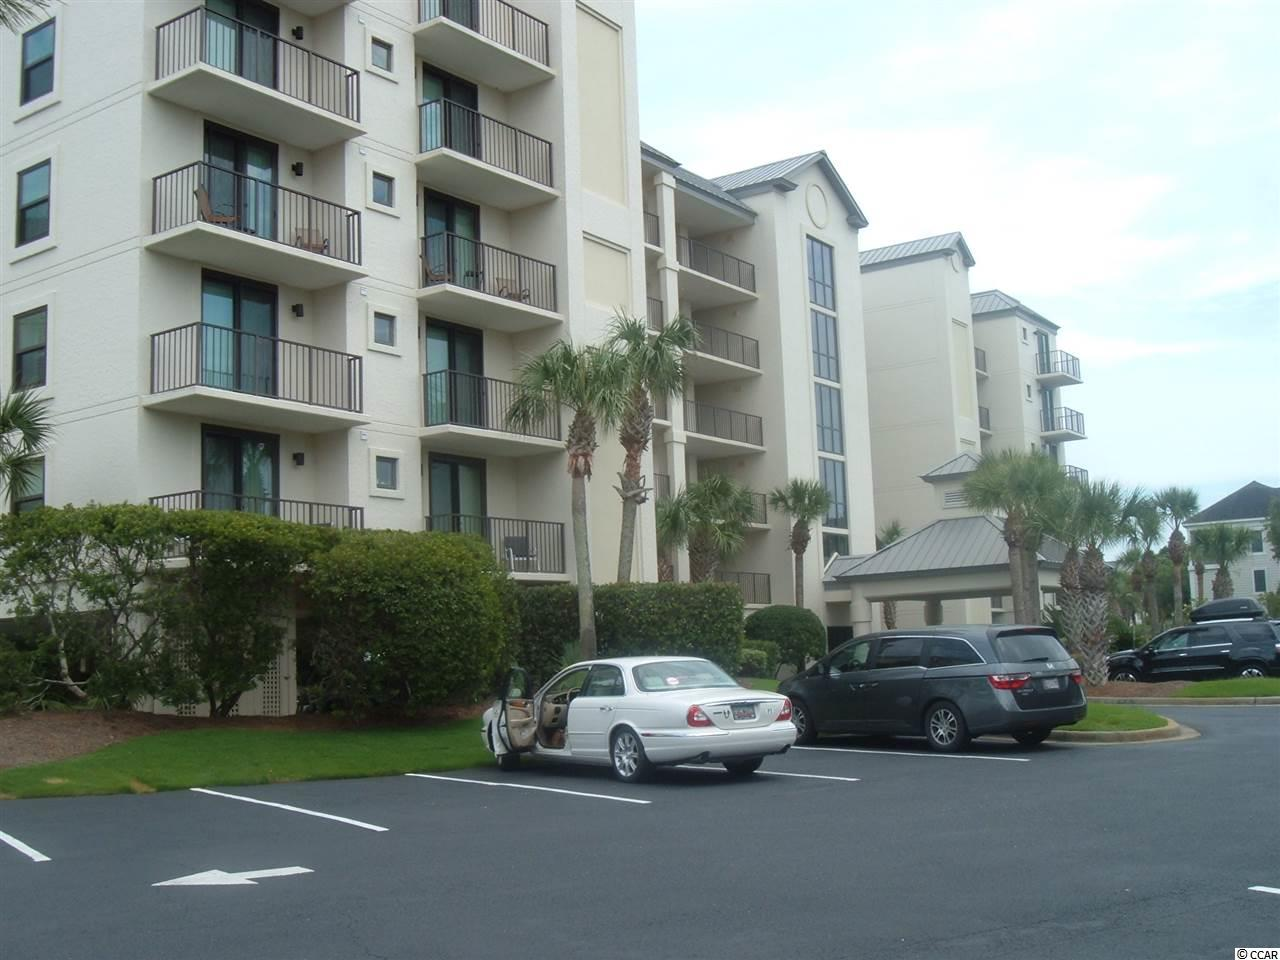 PRICE REDUCED! INTERVAL OWNERSHIP!  4 Weeks Per Year.  One Week Each Season. Ocean Front Condo - 2 nd  Fl. Gated Ocean Front Community. 3/BR -  3Bath Ocean Front Mstr. Bdrm w/ Balcony. Mstr Bath w/ Garden Tub & Shower & Double Vanity. FRM. /DR/KIT Combo w/ Balcony access. Breakfast Bar. Beautifully Decorated . Elevator. Large Ocean Front Balcony Overlooking Swimming Pool, Sandy Beach @ The Blue Atlantic. Ocean Front Community Club House, Lighted Tennis Courts, Bike @ Walking Paths, Lake Front Fishing Dock & Ocean Front Access. Under Unit Parking @ Storage. Sunday to Sunday.  Check -In 3:00 Check-Out 11:00.  Subject to first refusal By Other Owners. RENOVATED 2018!